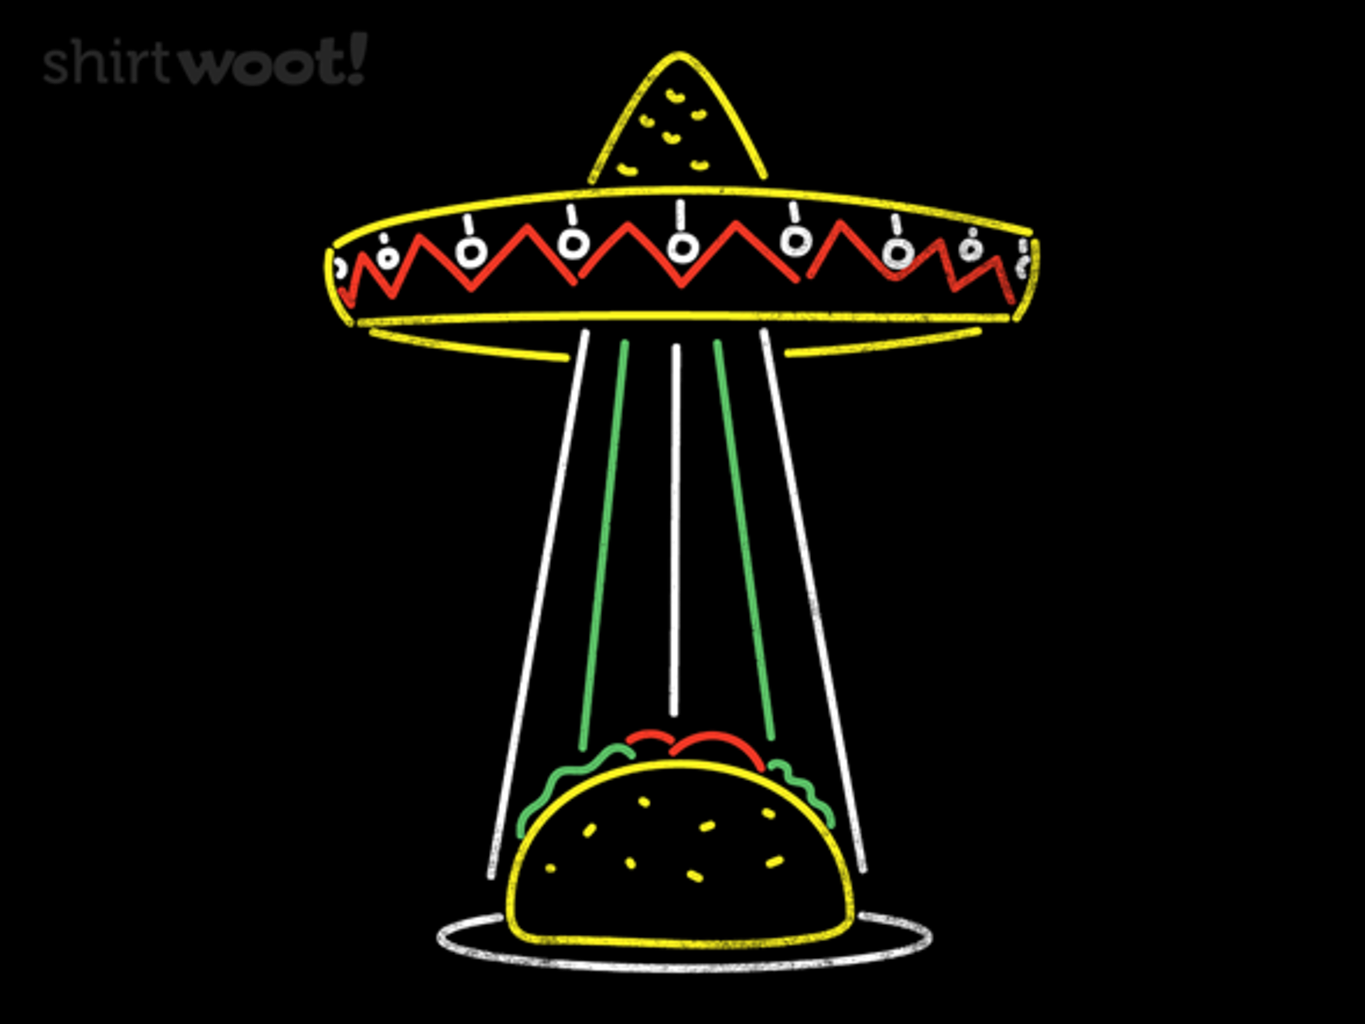 Woot!: Flying Taco